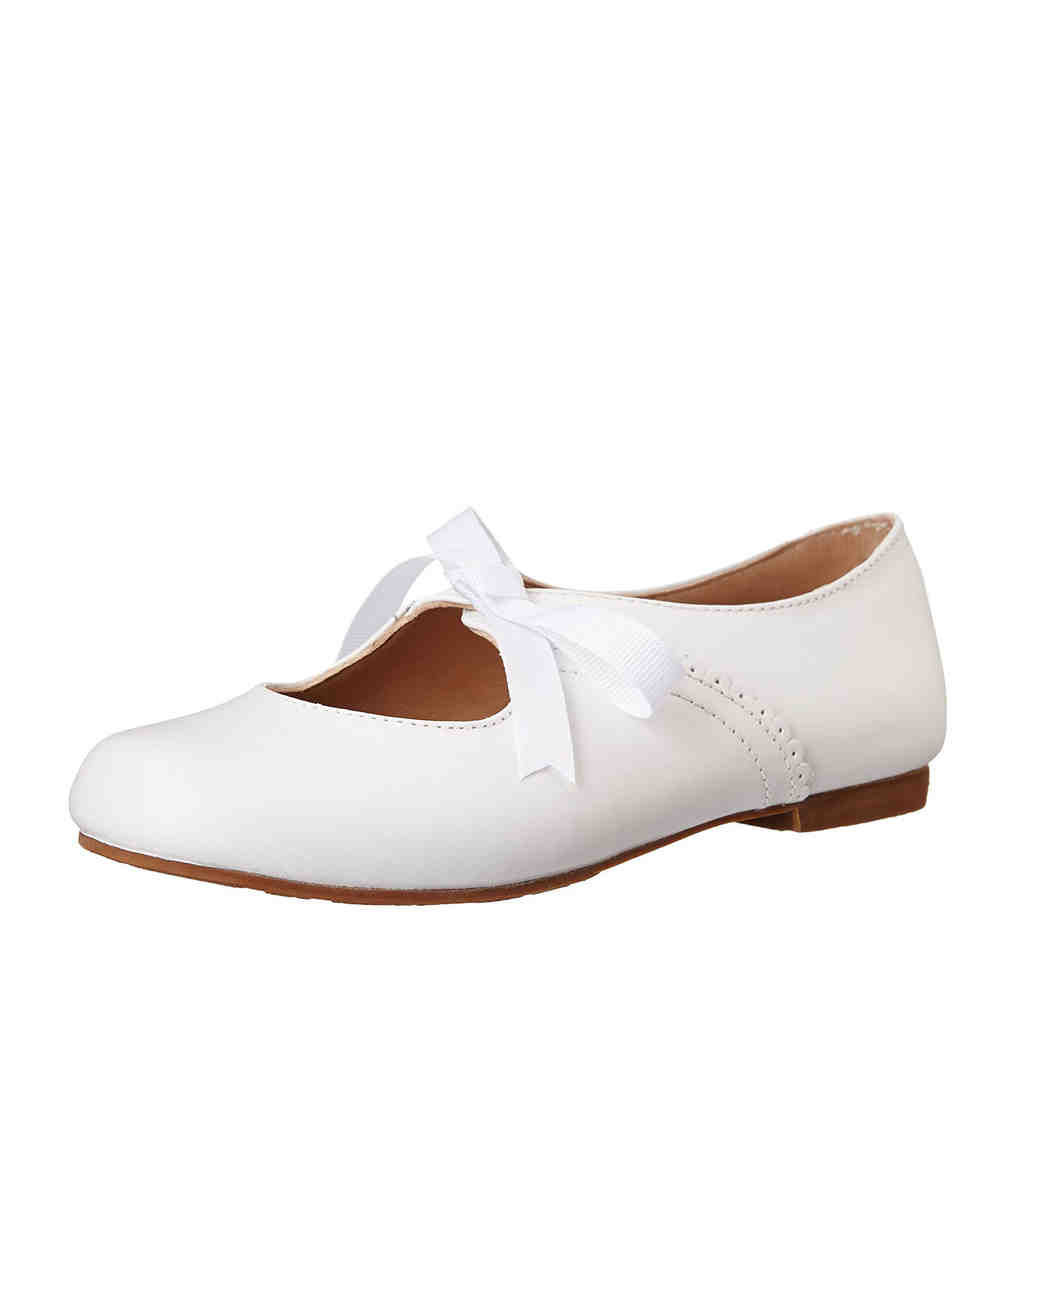 white flower girl shoes with bow